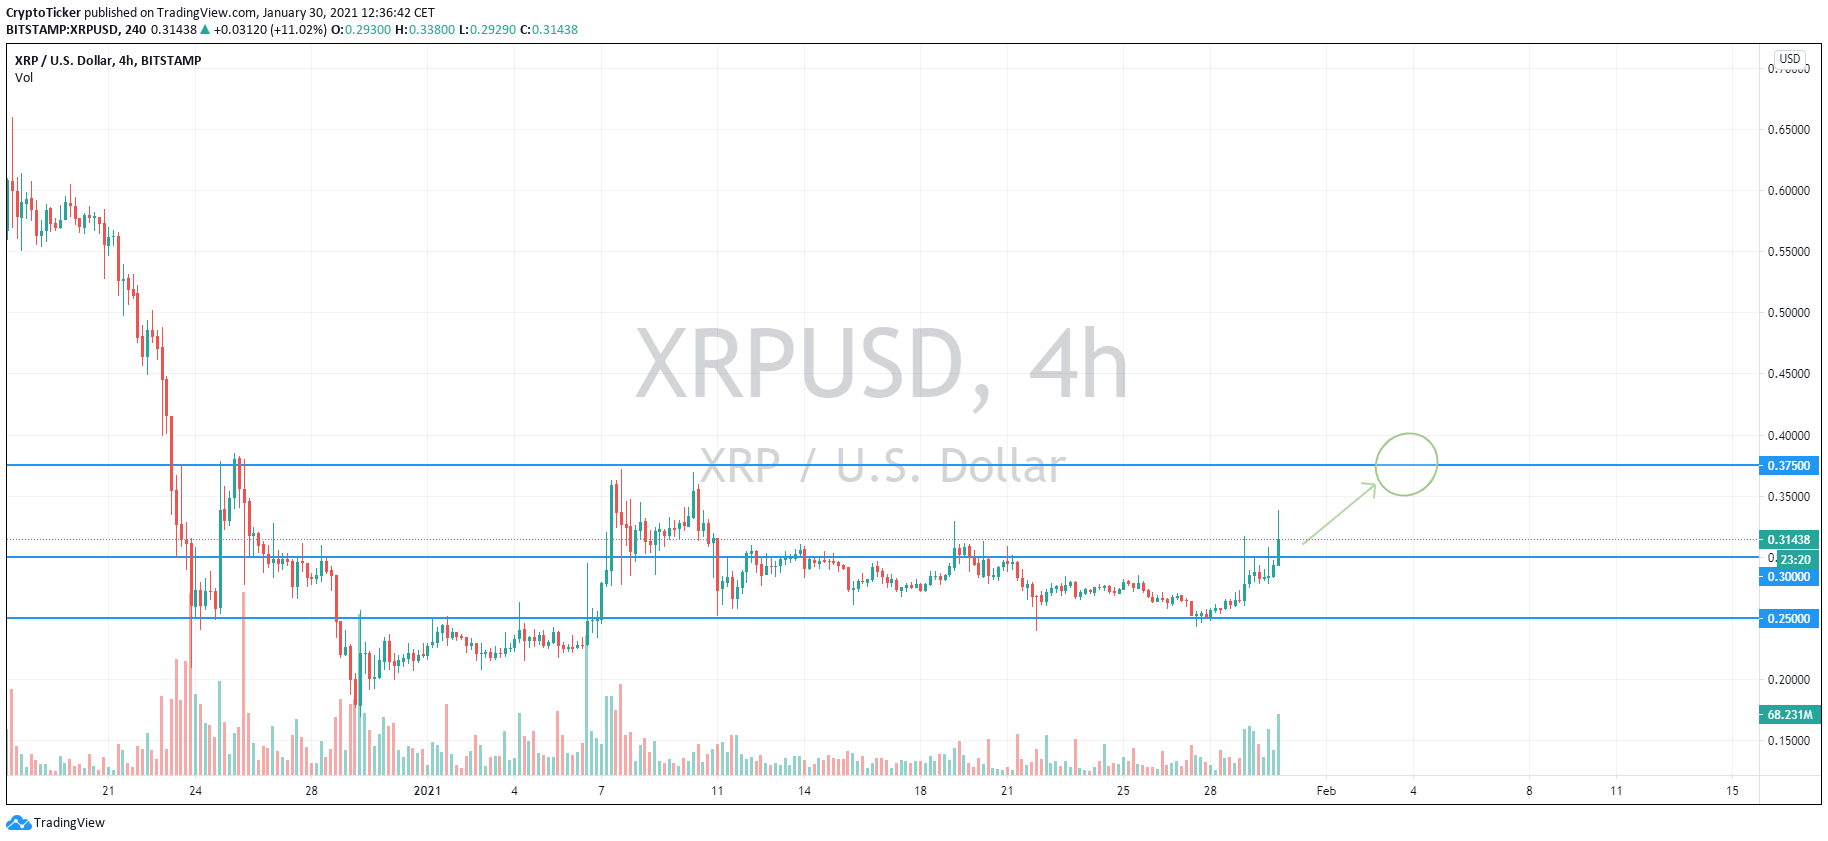 XRP/USD 4-hour chart showing XRP prices breach USD 30 cents in anticipation of a higher price